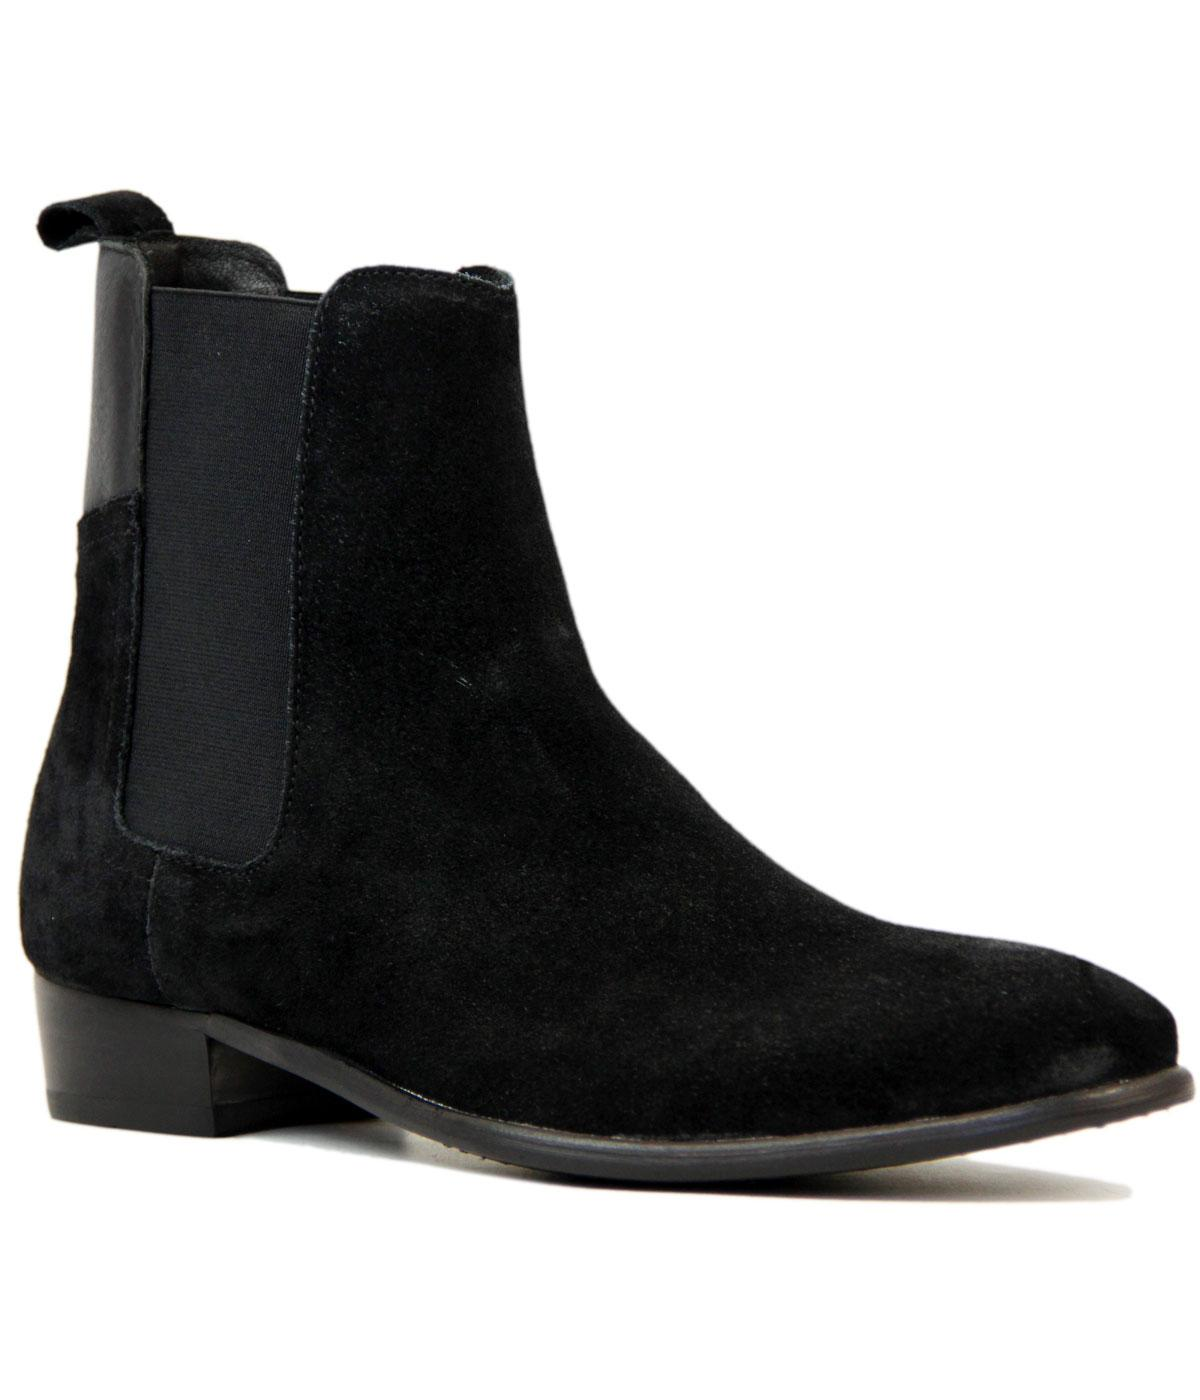 Watts H BY HUDSON Cuban Heel Suede Chelsea Boots